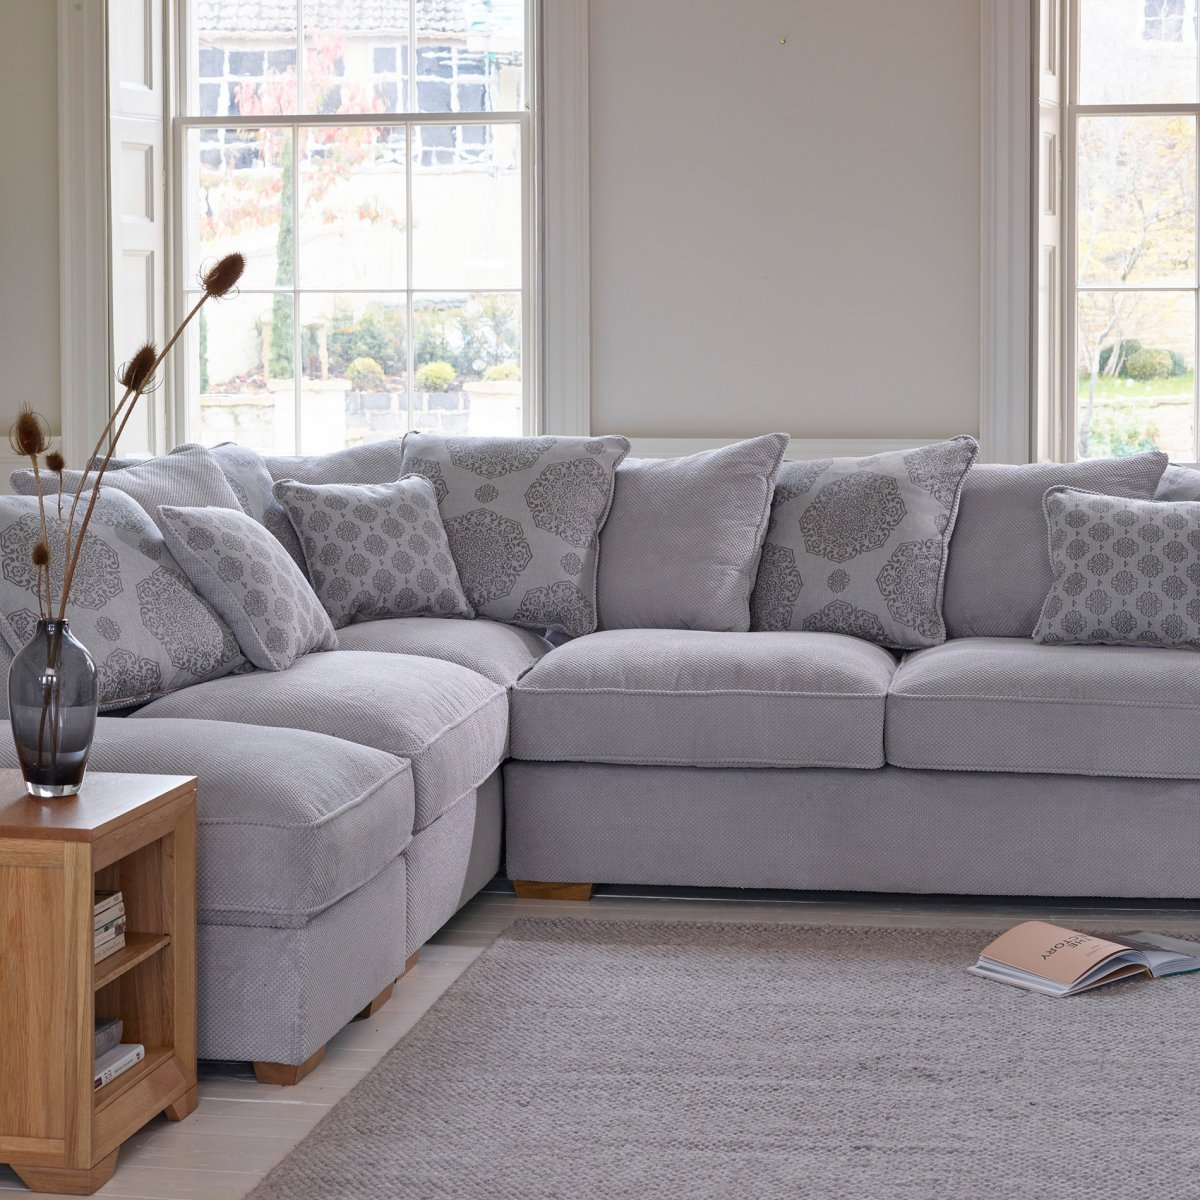 nebraska right hand corner sofa with pillow back in aero charcoal - fawn with rose